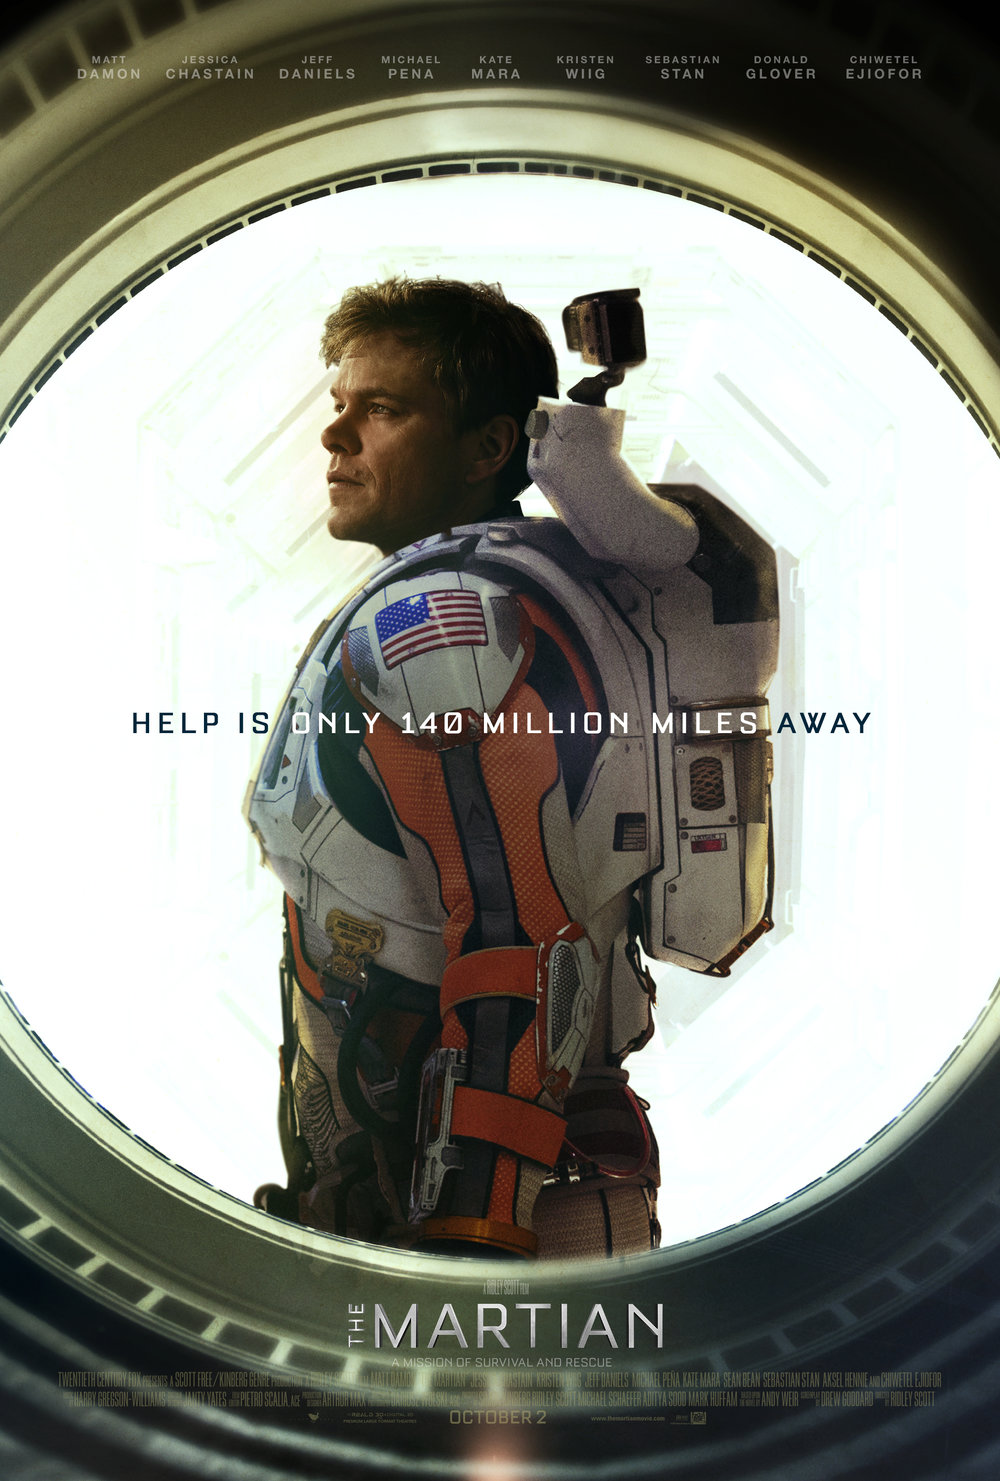 The Martian - 20th Century Fox